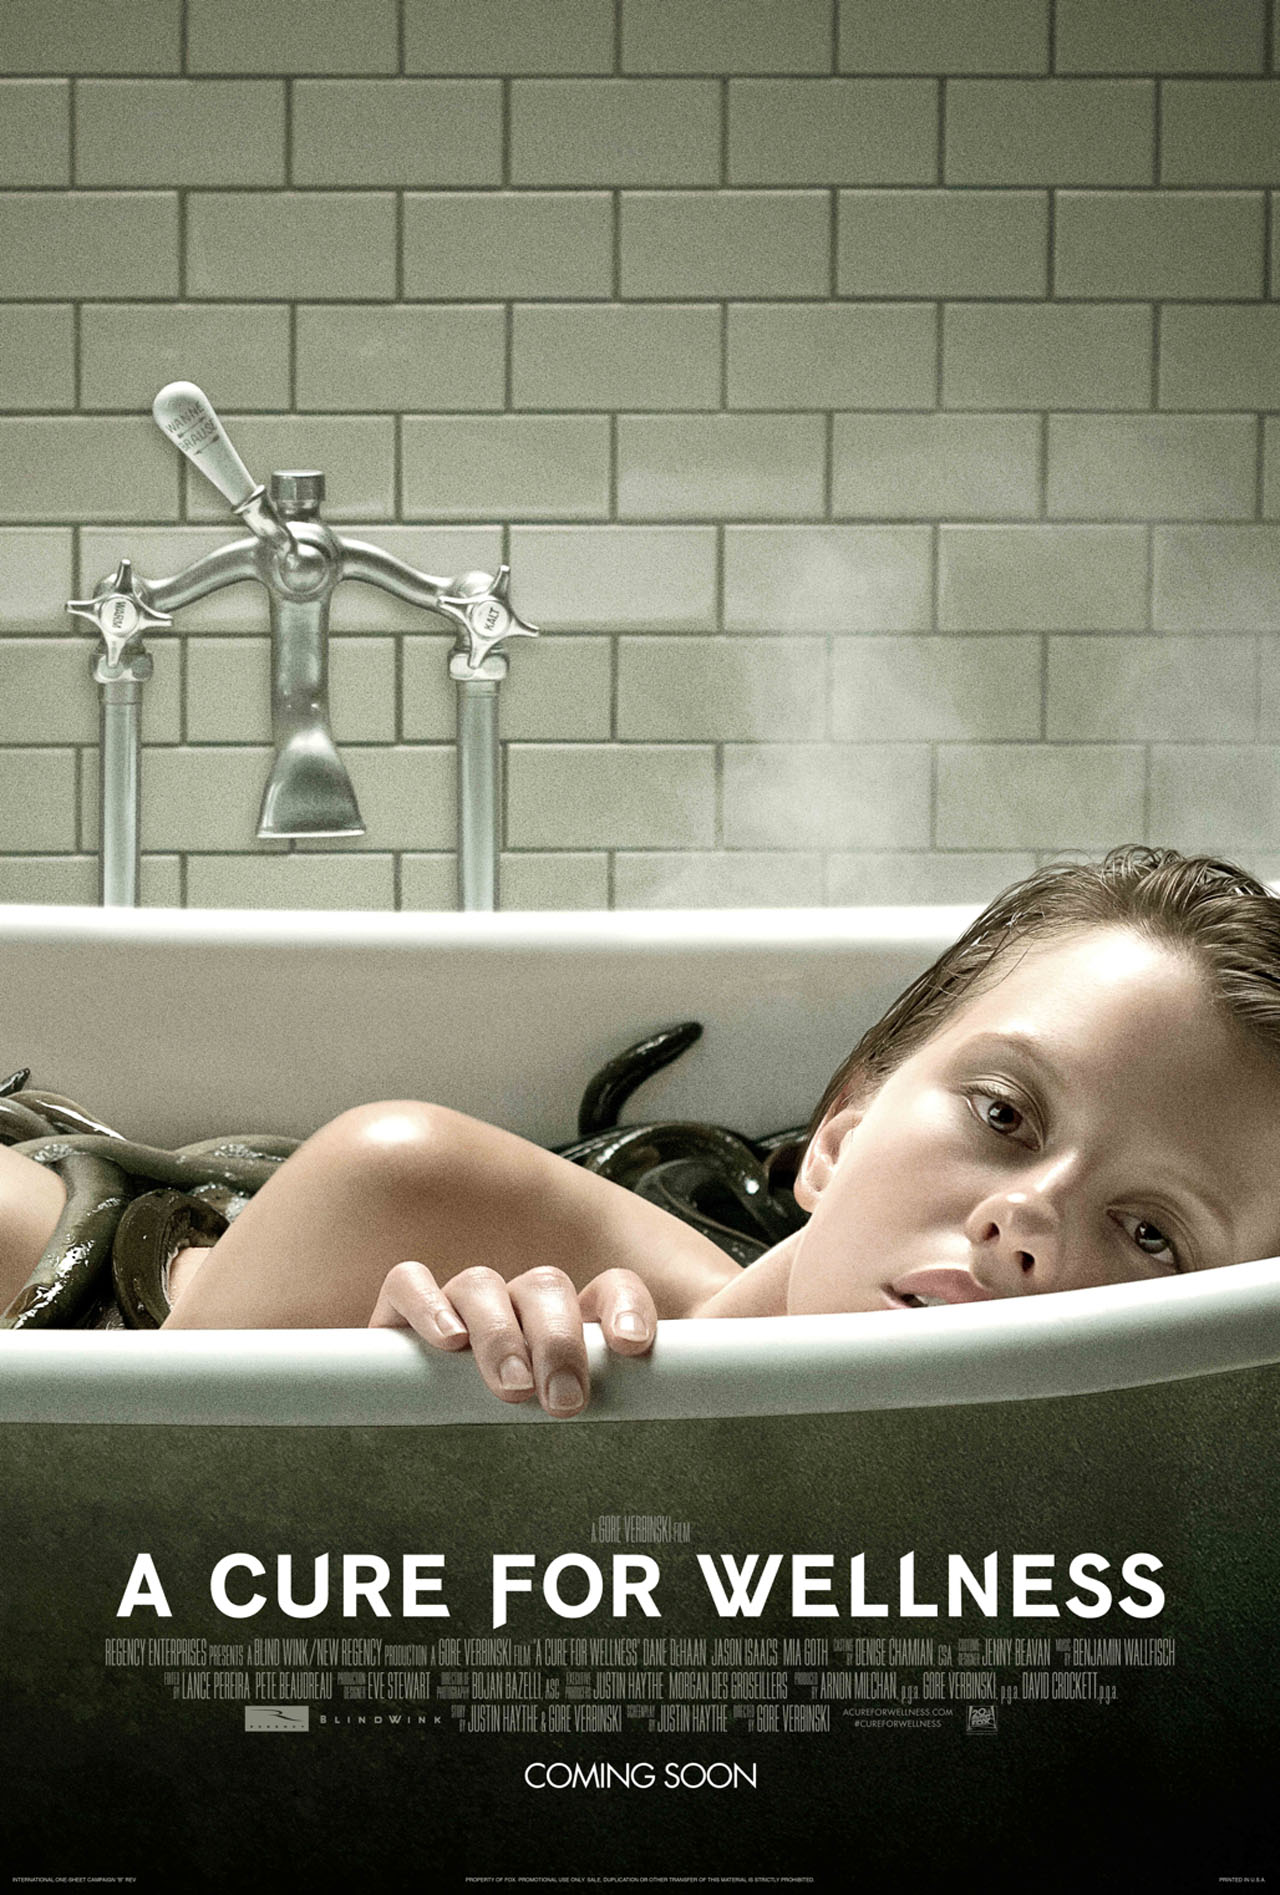 A Cure for Wellness: la nuova locandina originale